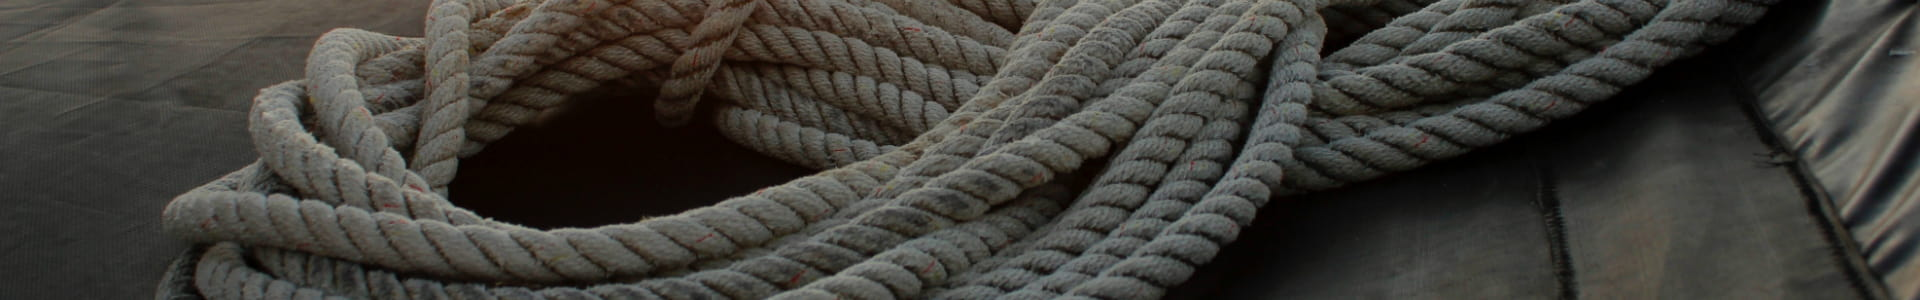 Ropes on a boat deck